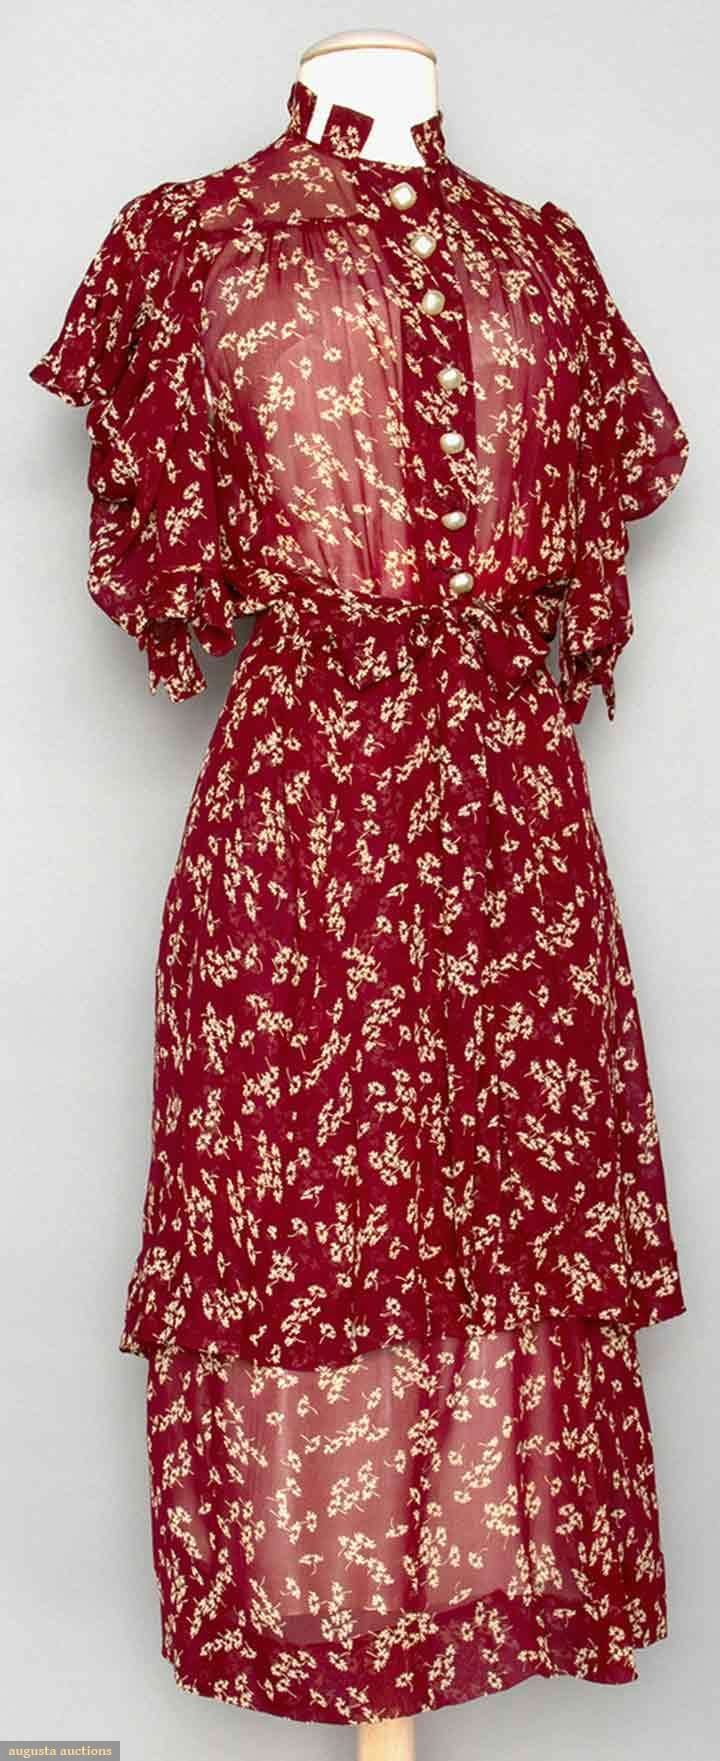 TWO SILK DAY DRESSES, 1930s Go Back Lot: 120 MAY 13th & 14th, 2014 Sturbridge, Massachusetts 1 maroon w/ white floral print; 1 brown w/ lace collar; t/w 1 1920s black lace blouse.